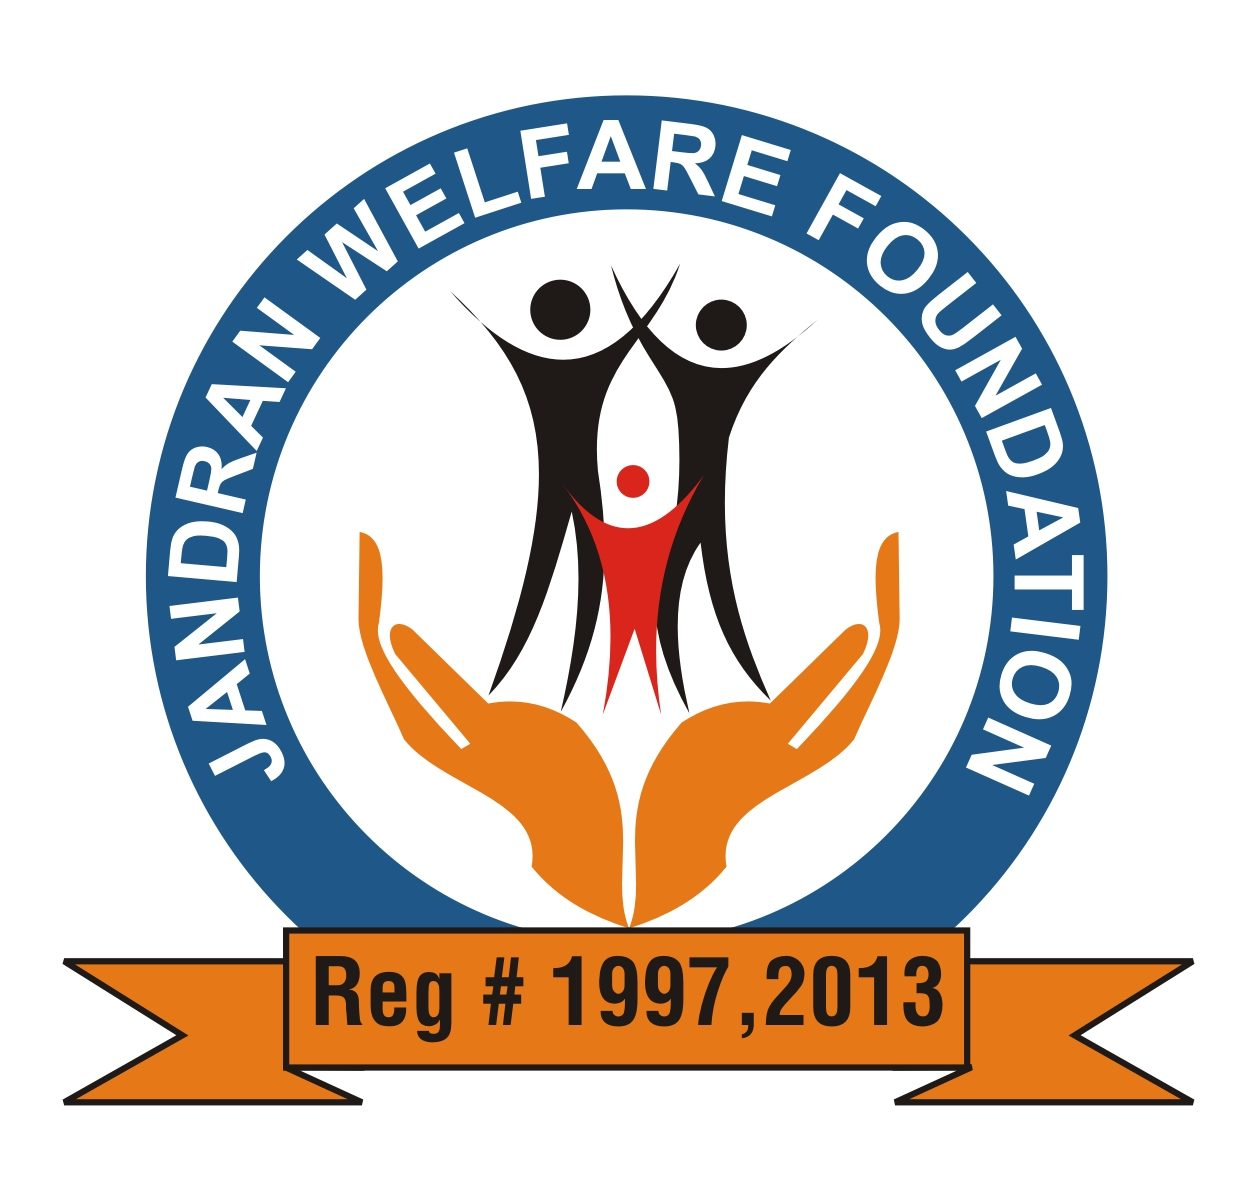 Jandran Welfare Foundation